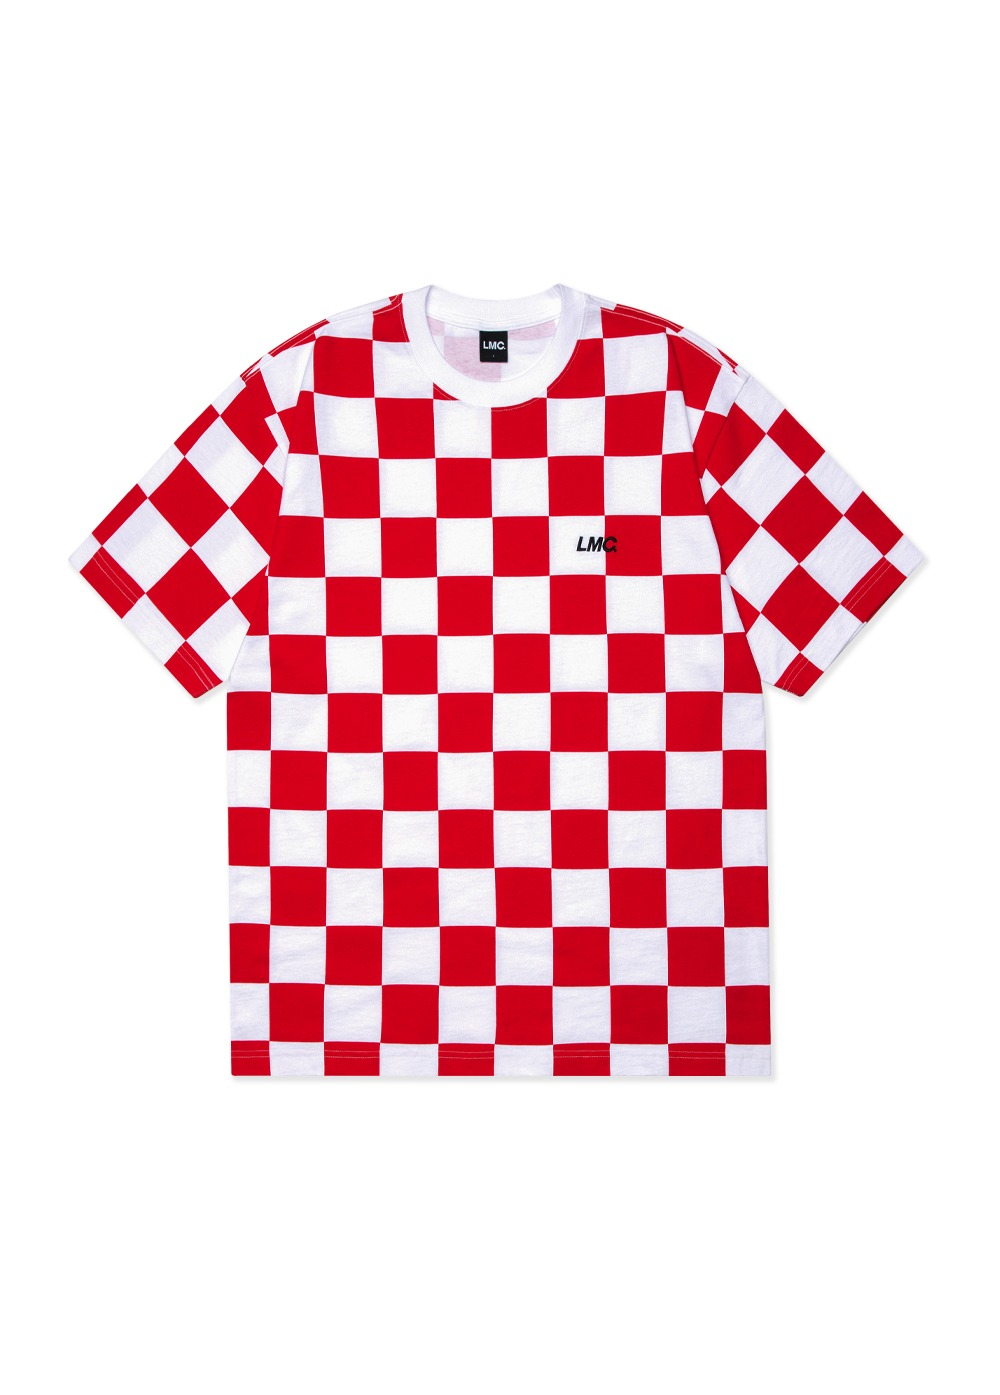 LMC CHECKERBOARD TEE red